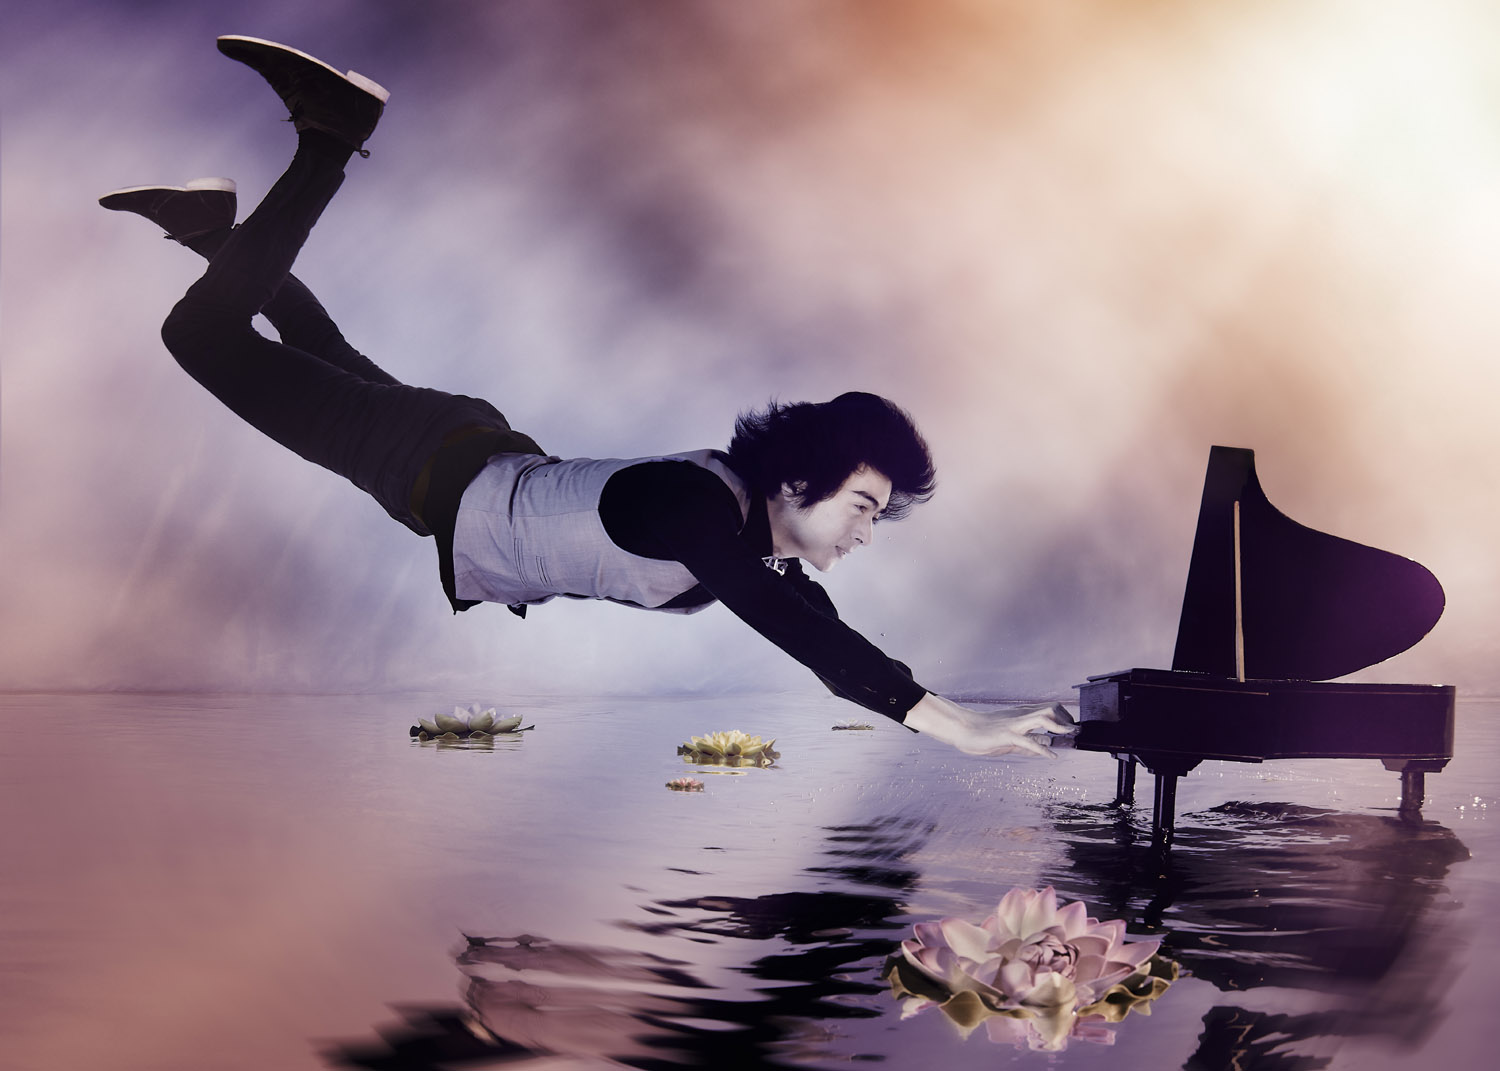 Commercial Fashion - Harry Fayt - Underwater Photographer